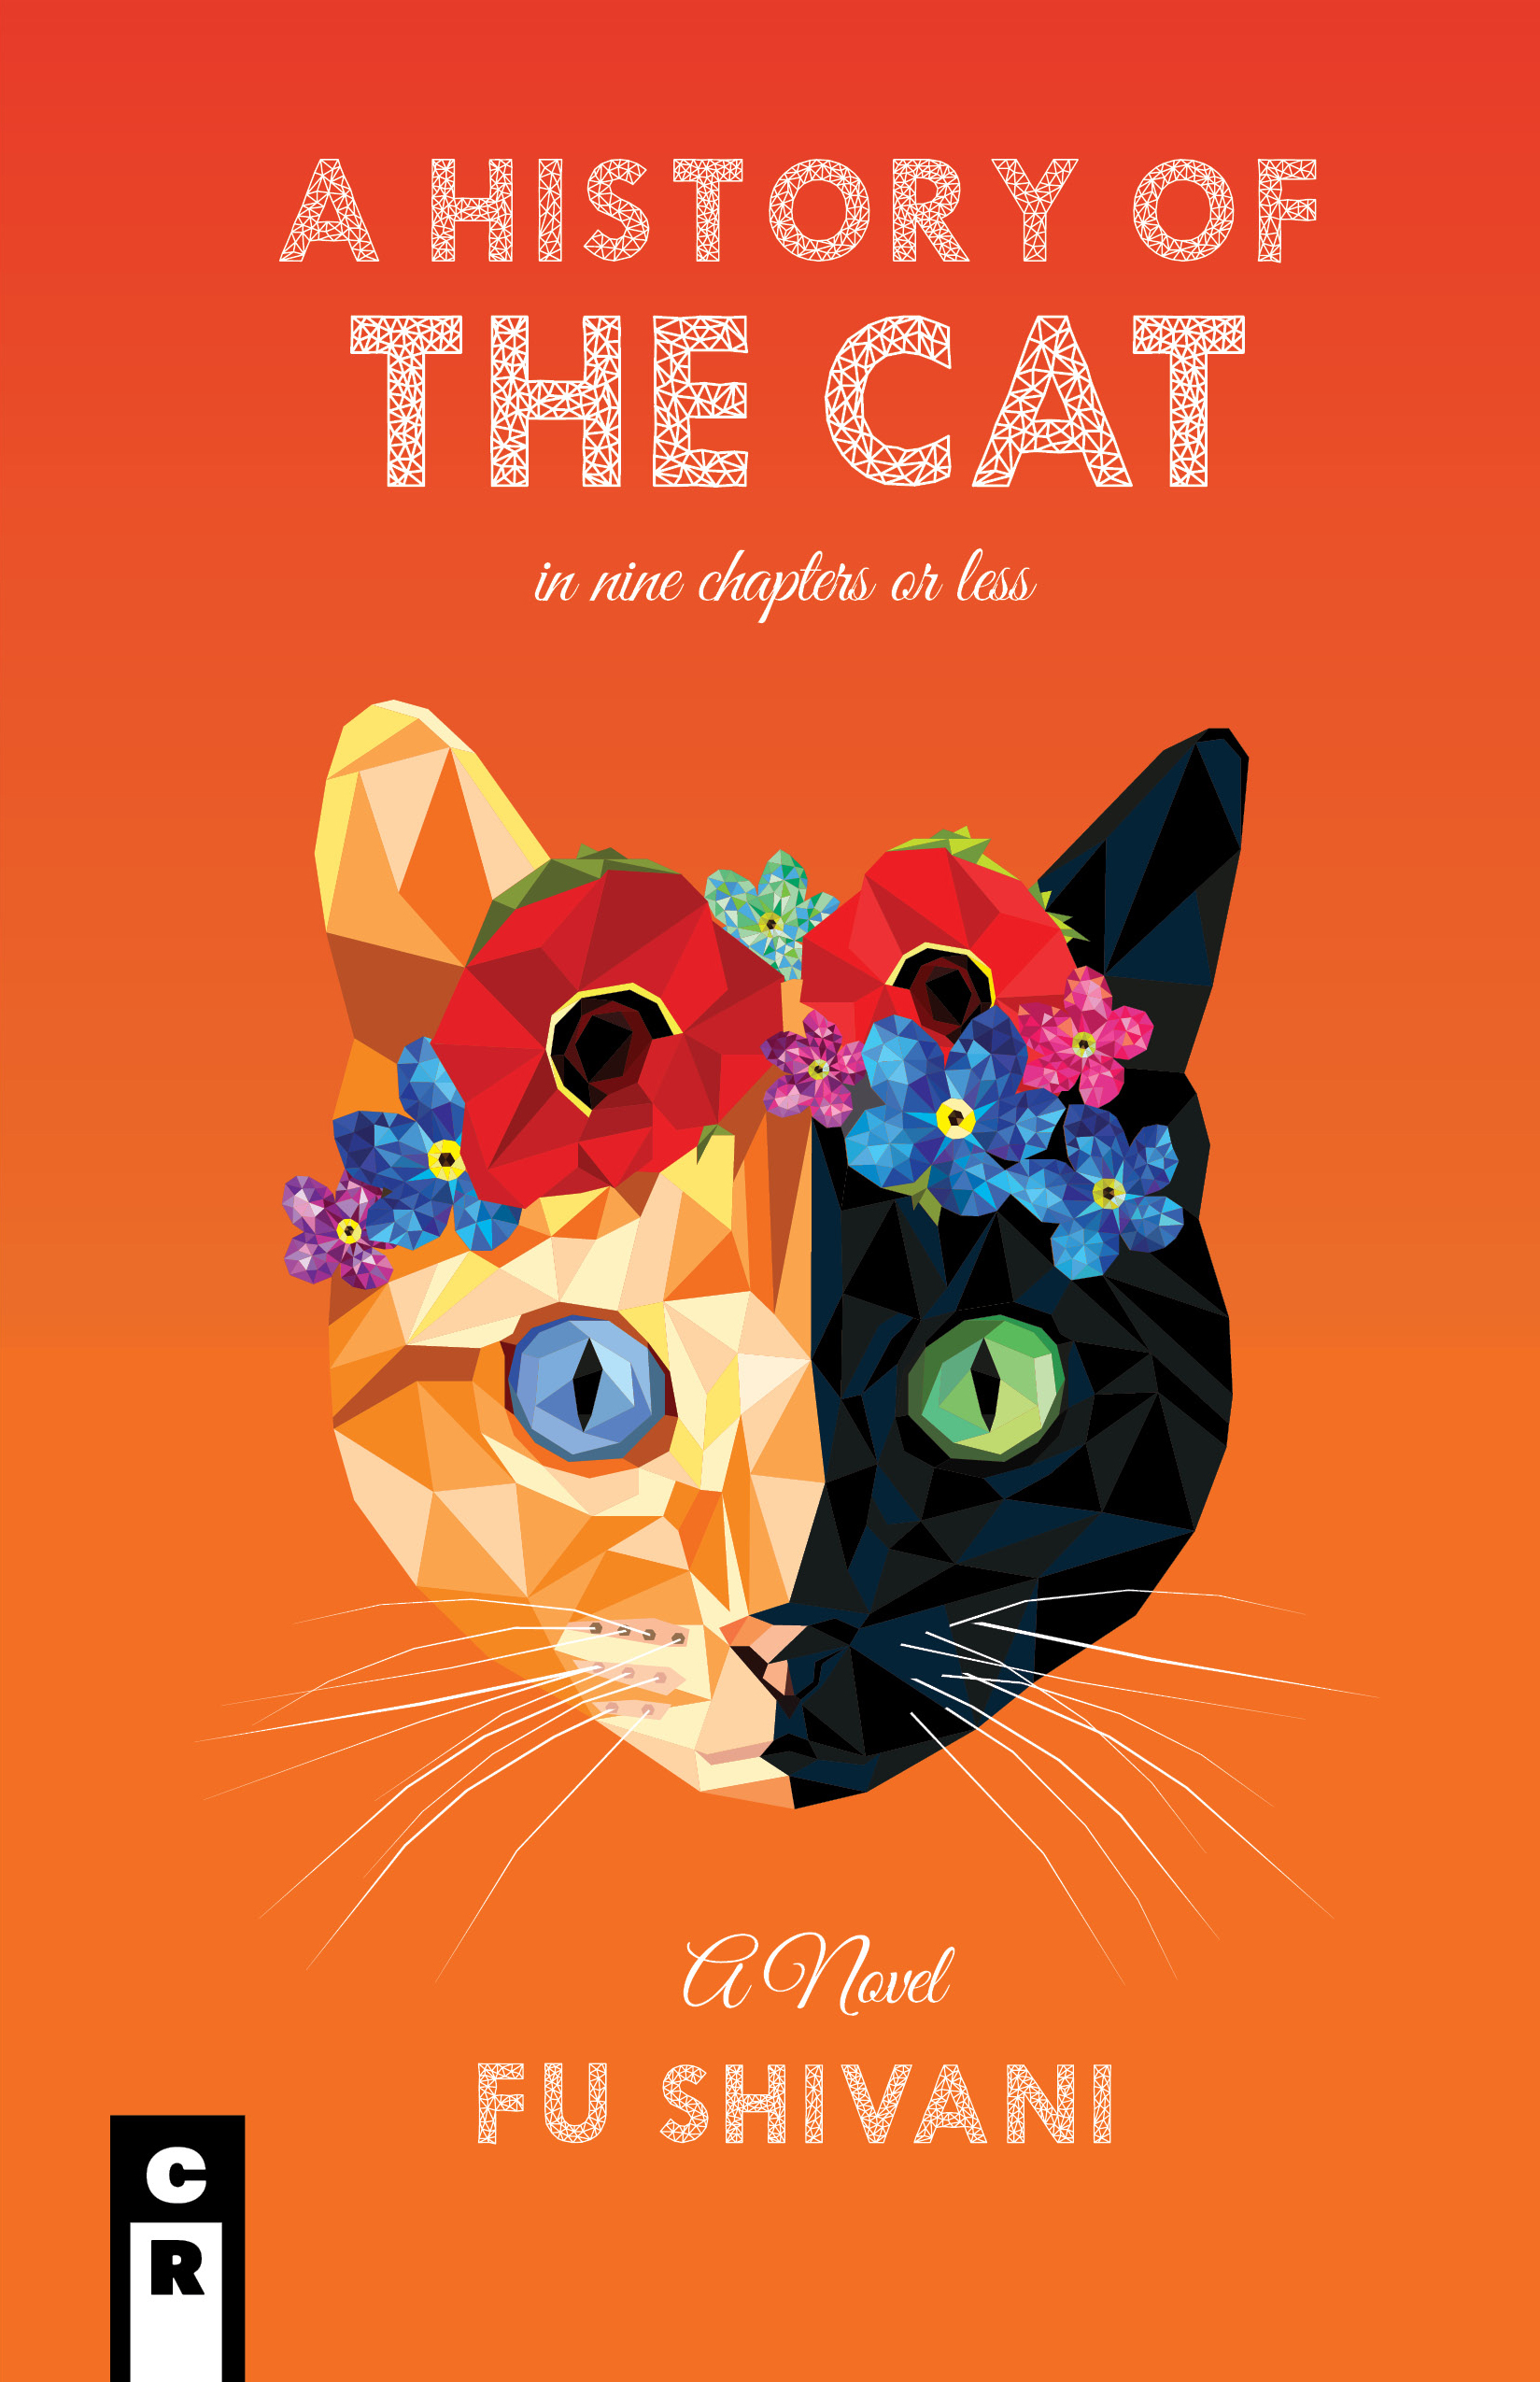 A History of the Cat in Nine Chapters or Less